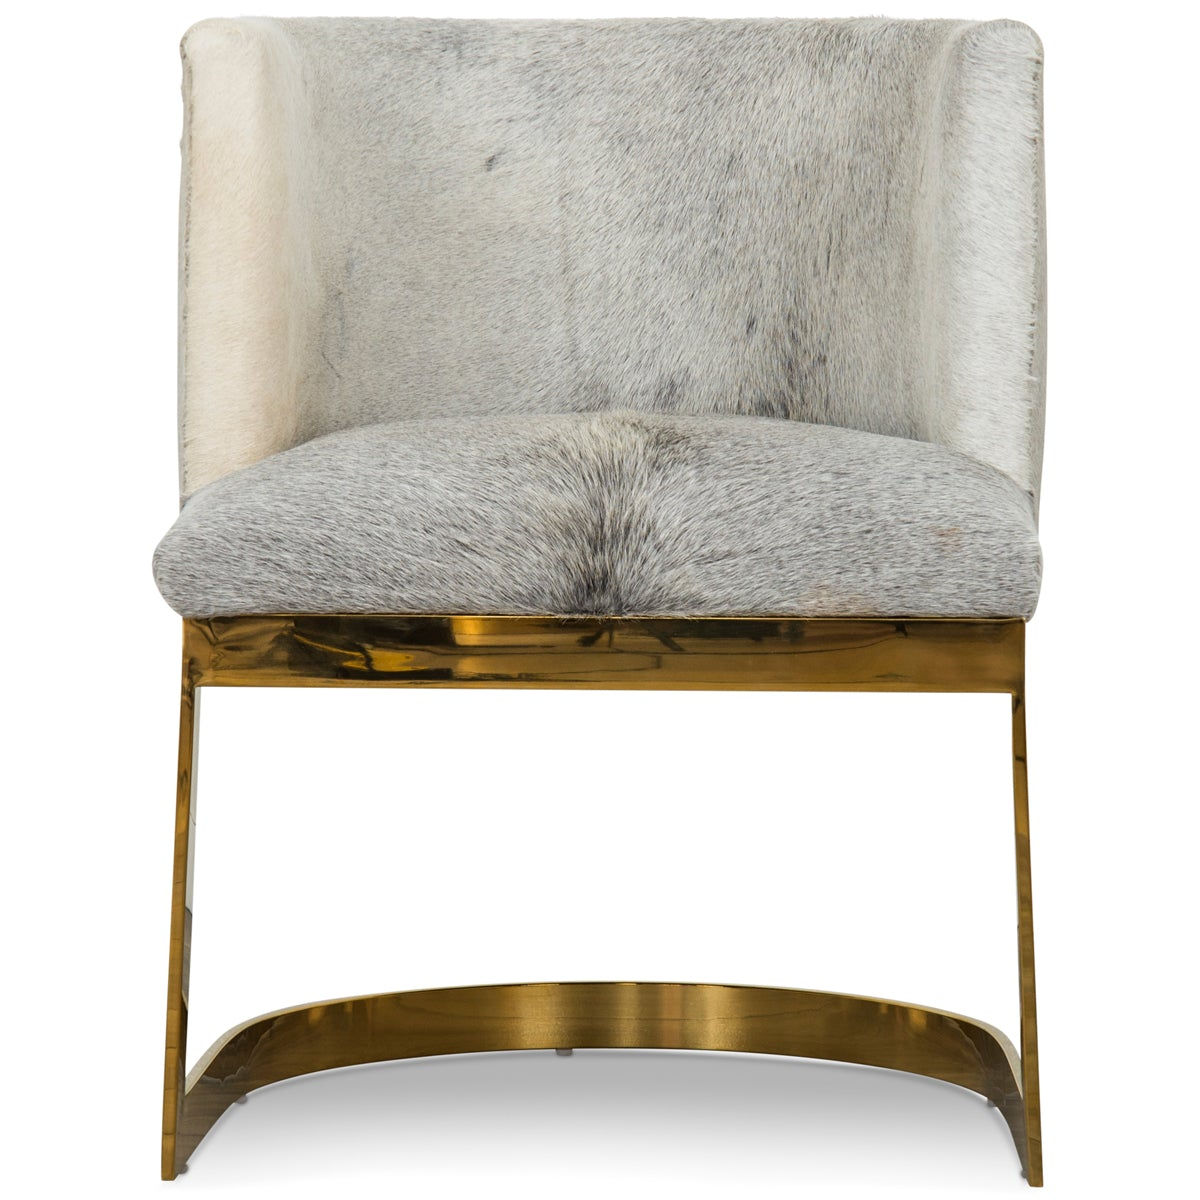 Ibiza Dining Chair in Grey Champagne Cowhide - ModShop1.com